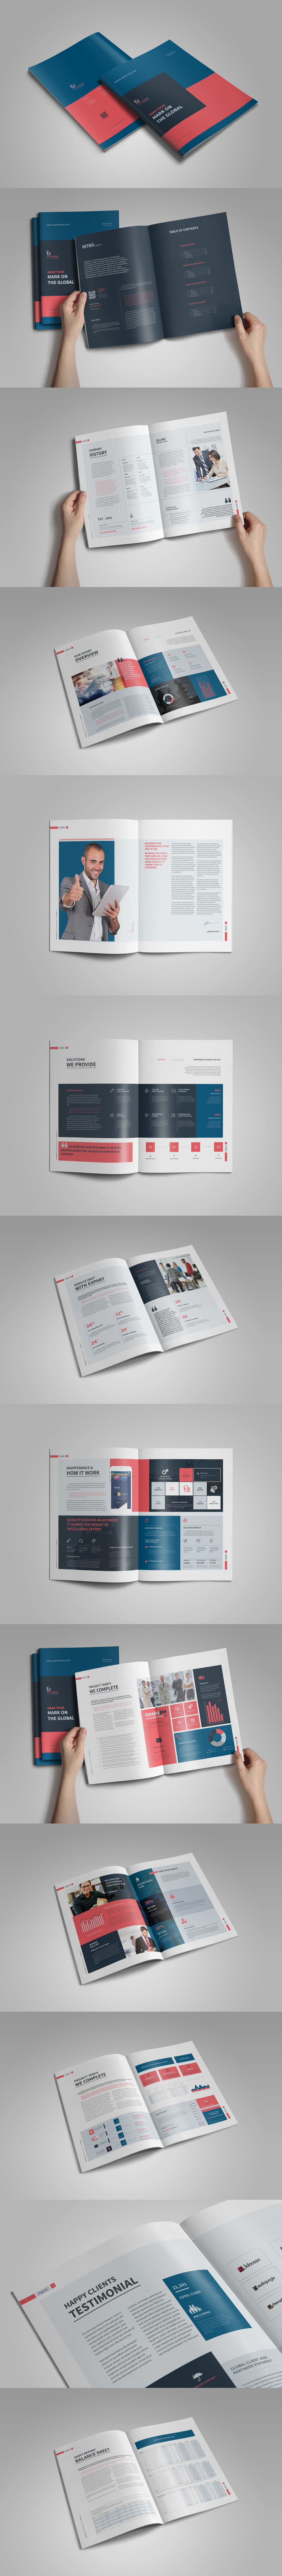 Annual Report Template InDesign INDD - 32 Pages, A4 and US Letter ...